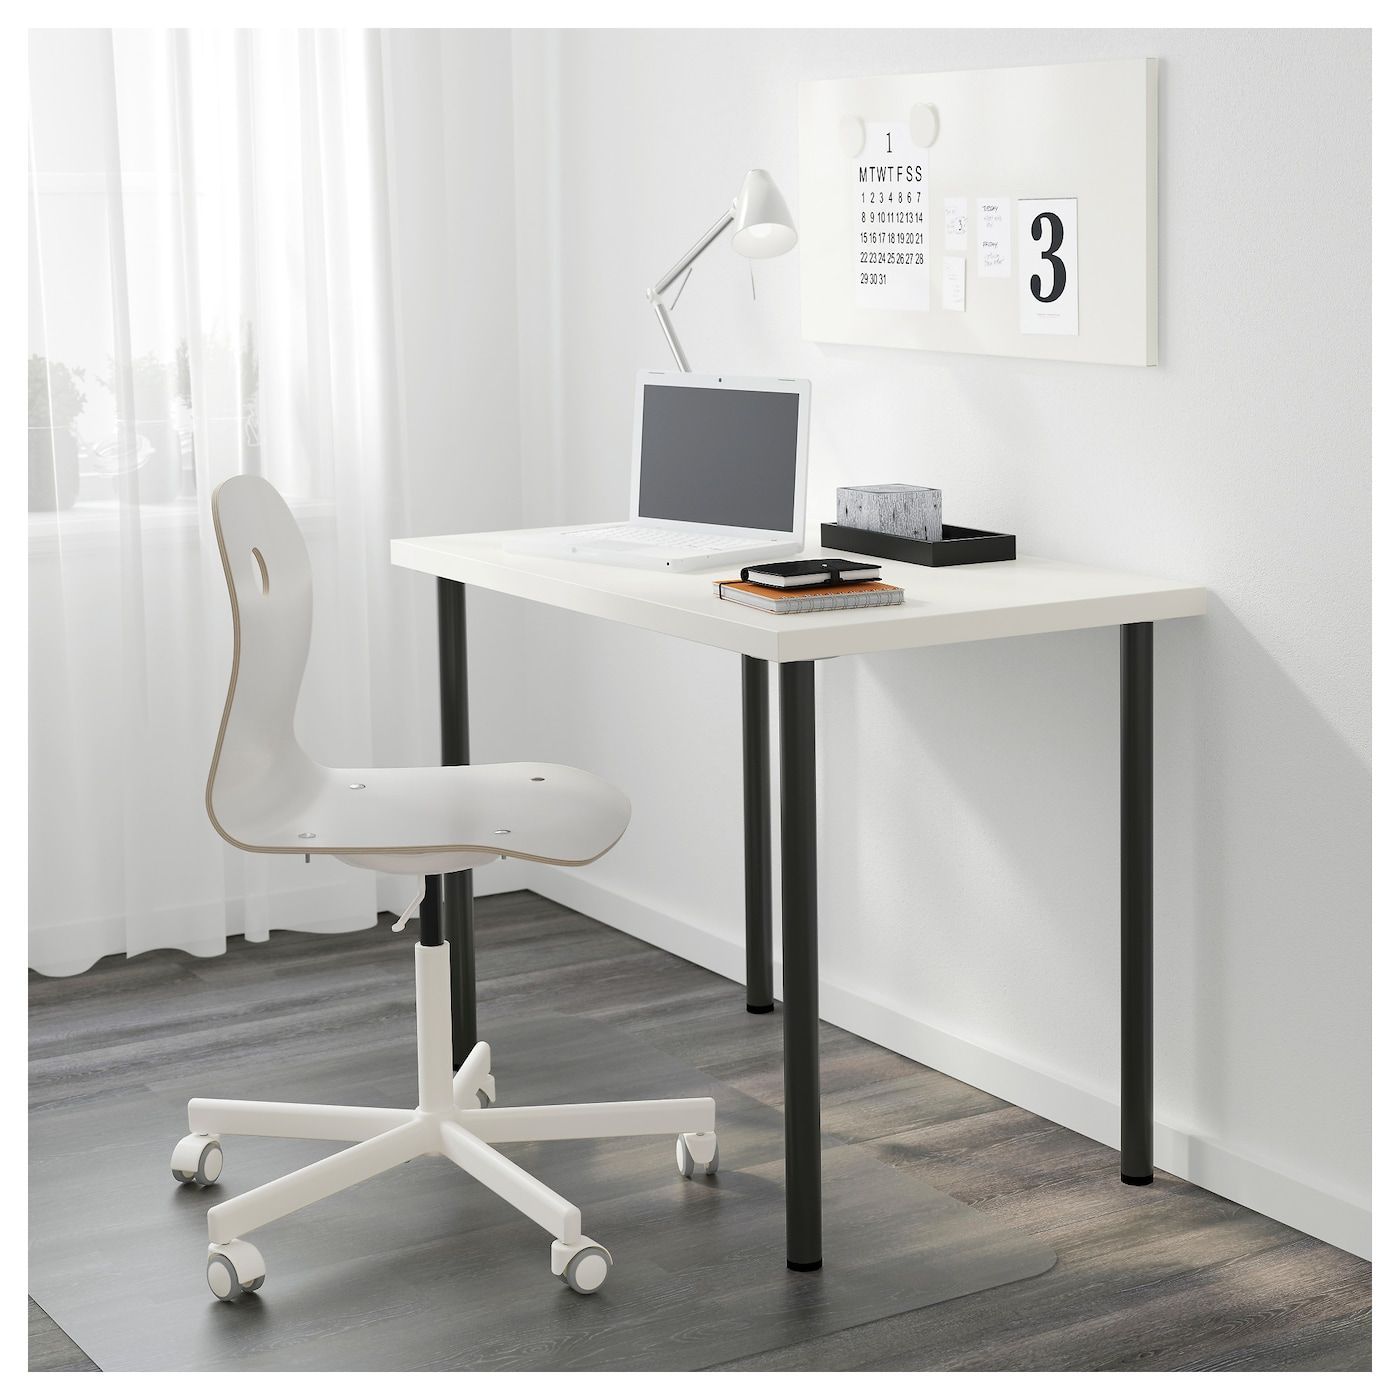 Linnmon Adils Table Blanc Noir 100x60cm Magasinez Sur Fr Ikea Ca Ikea Drawer Unit Linnmon Table Top Ikea